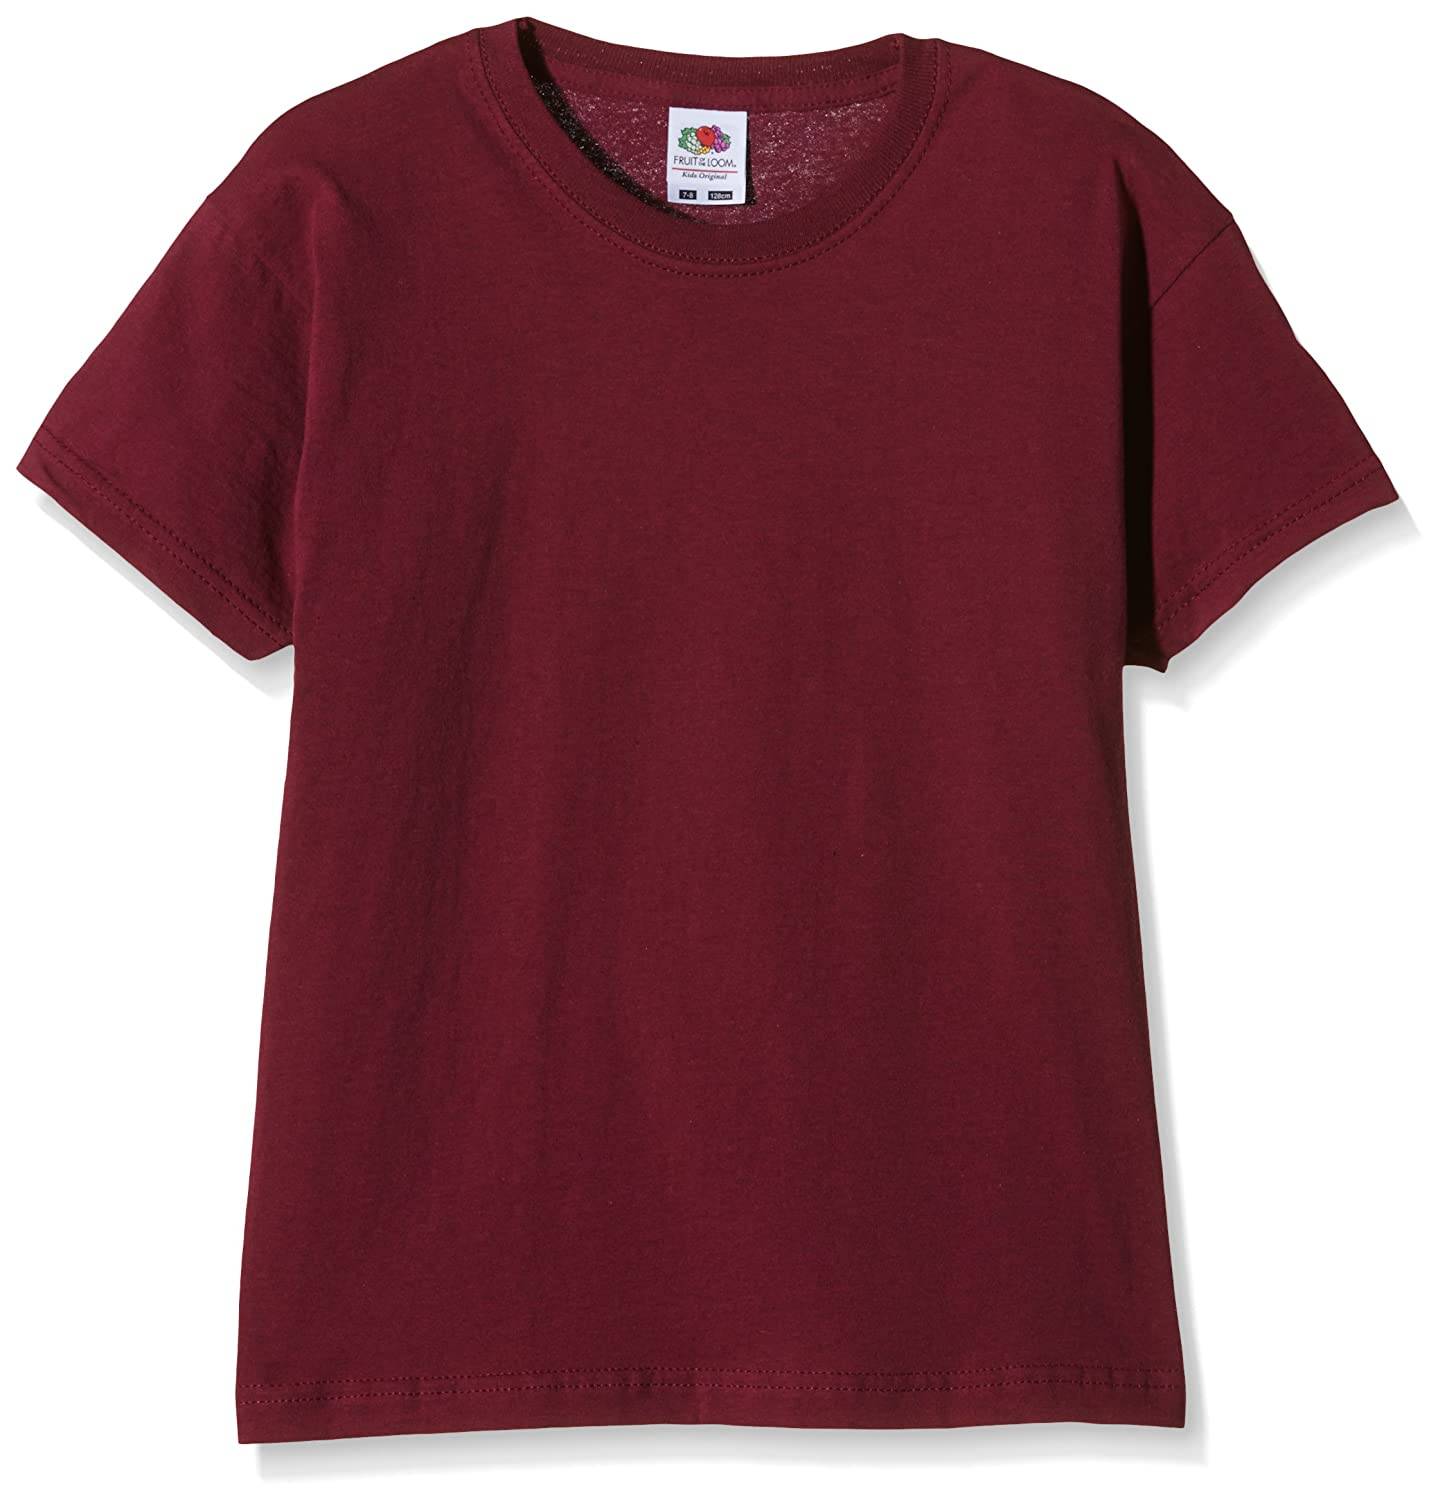 Manufacturer Size:30 Fruit of the Loom Unisex Kids Original T T-Shirt Burgundy 7-8 Years